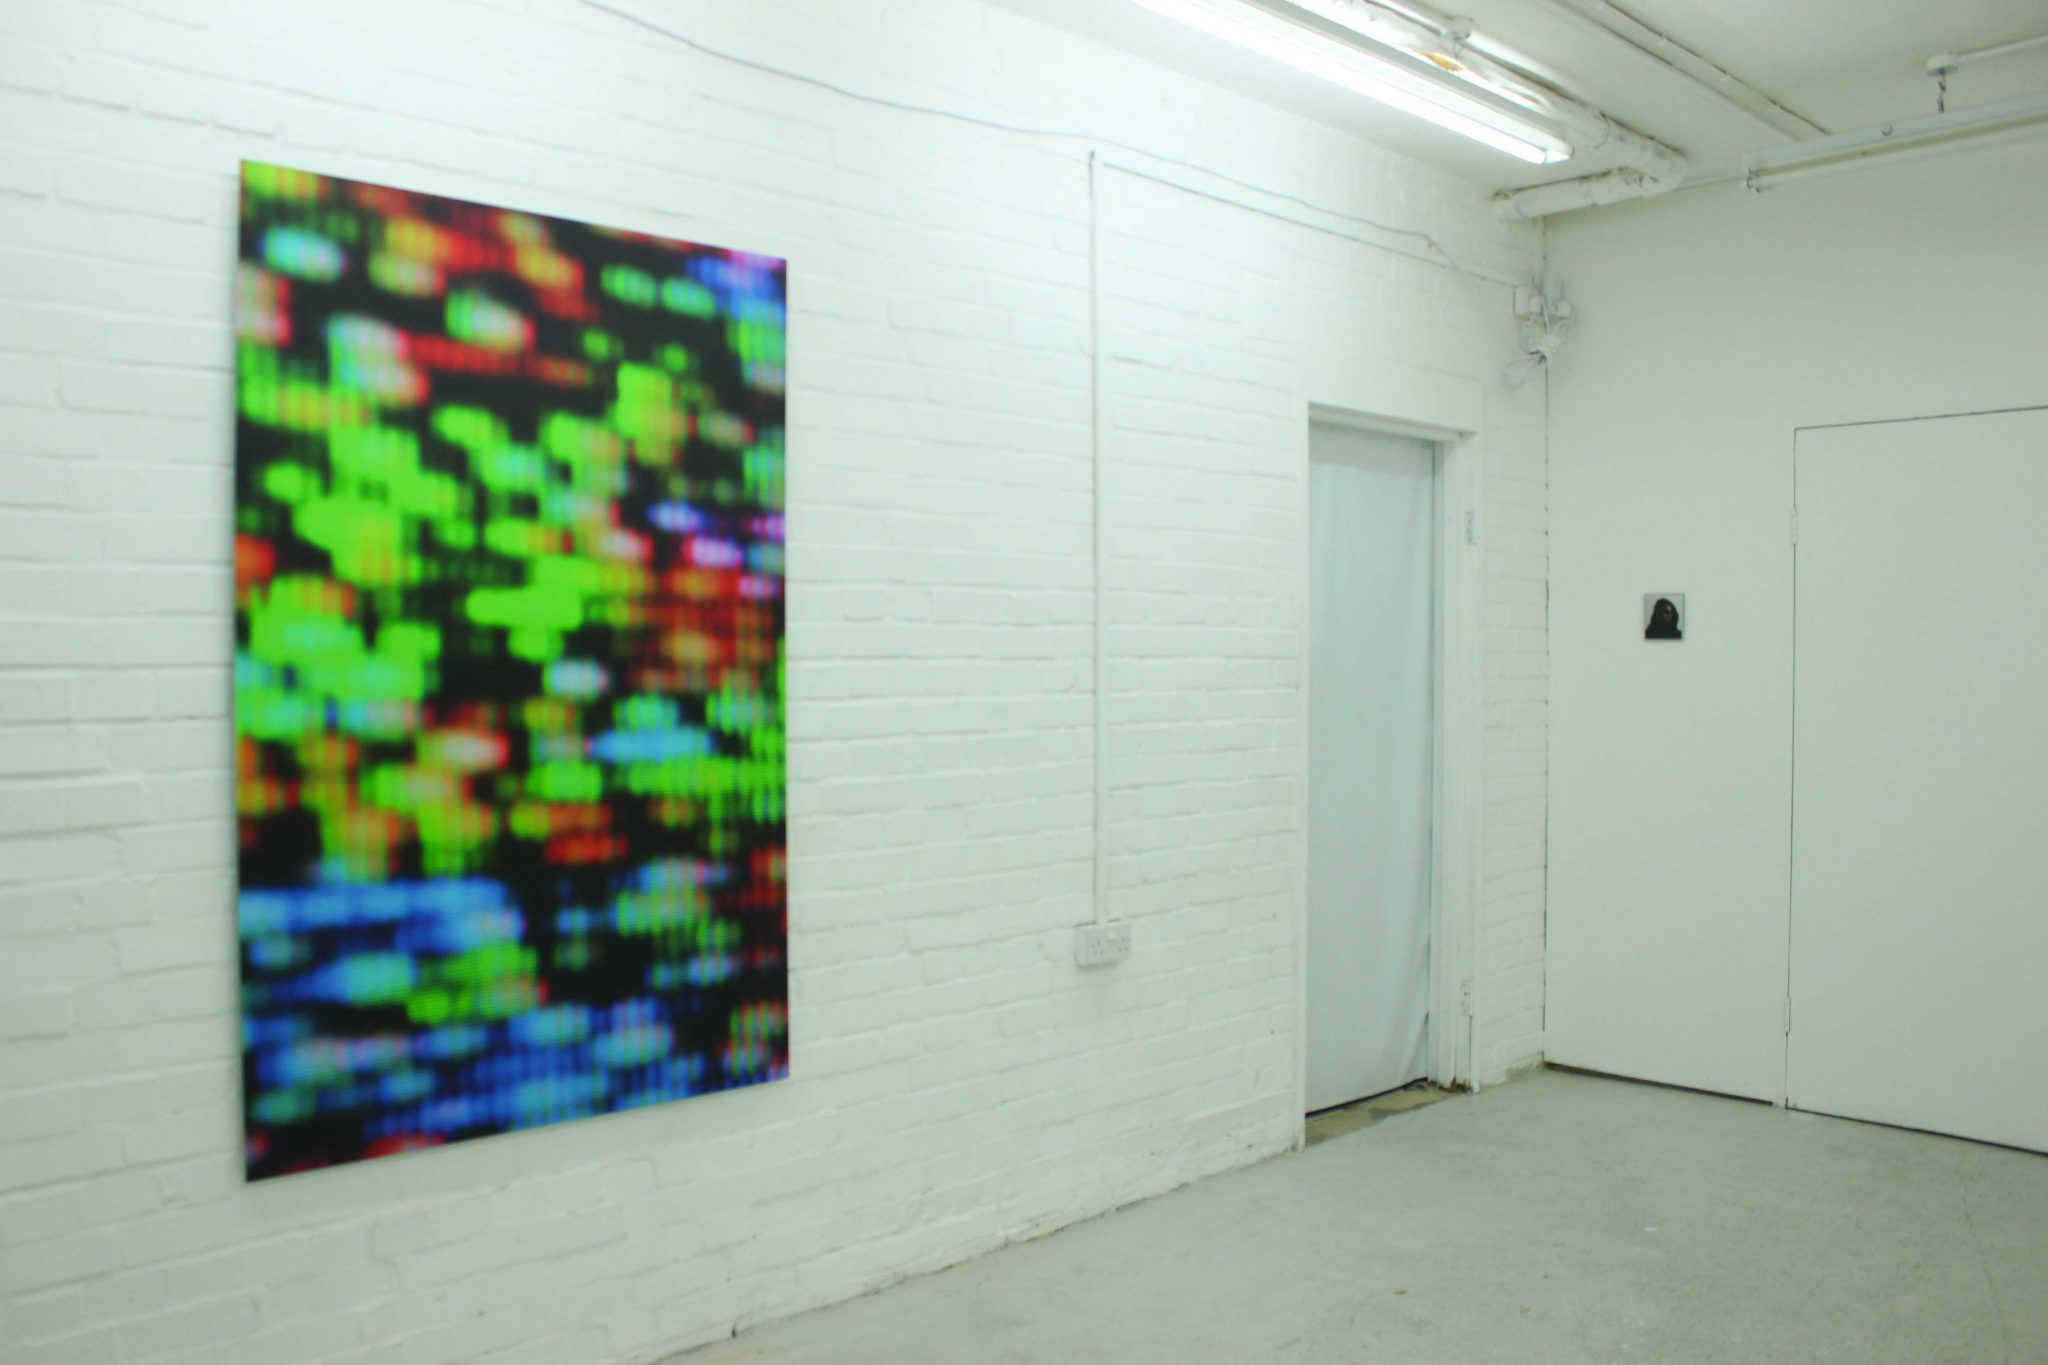 Installation view, image courtesy of the artist Gabriel Molina